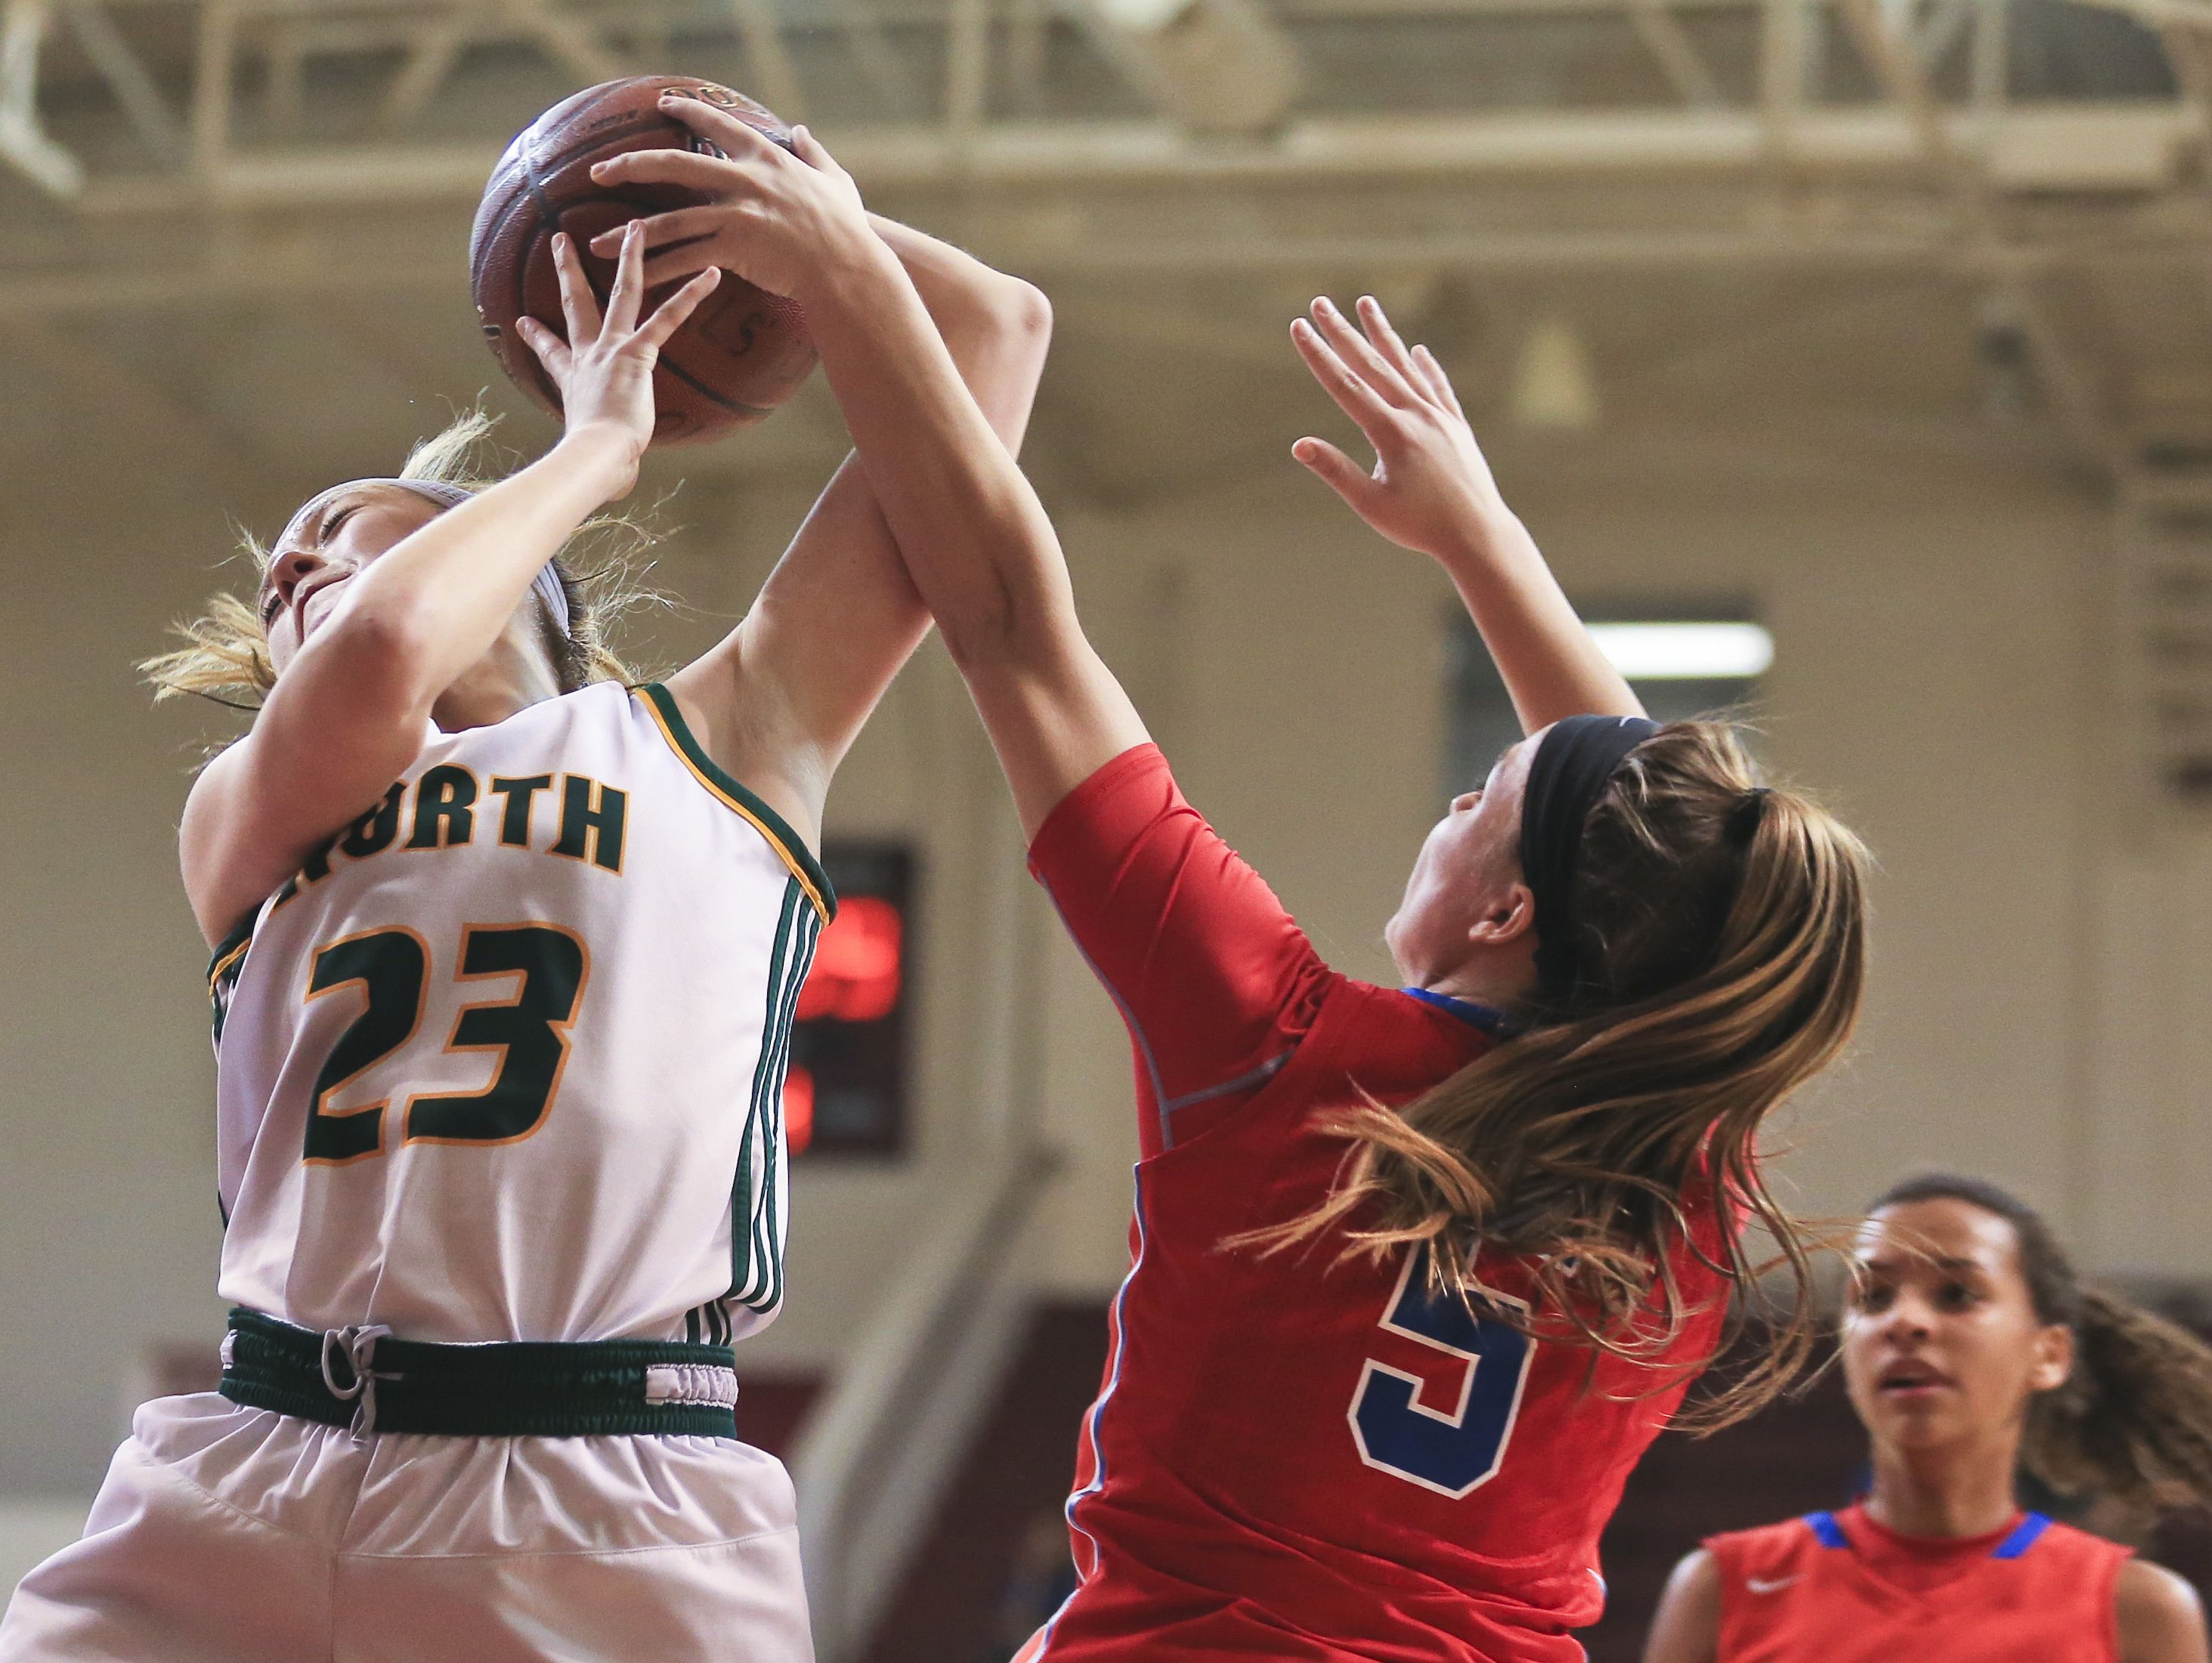 North Bullitt's Lauren Deel is pressured by Christian Academy's Emma Wesley in the first game of the Girls' LIT at Bellarmine University. Deel finished with 10 points and 11 rebounds. The Lady Centurions beat the Lady Eagles 57-45.